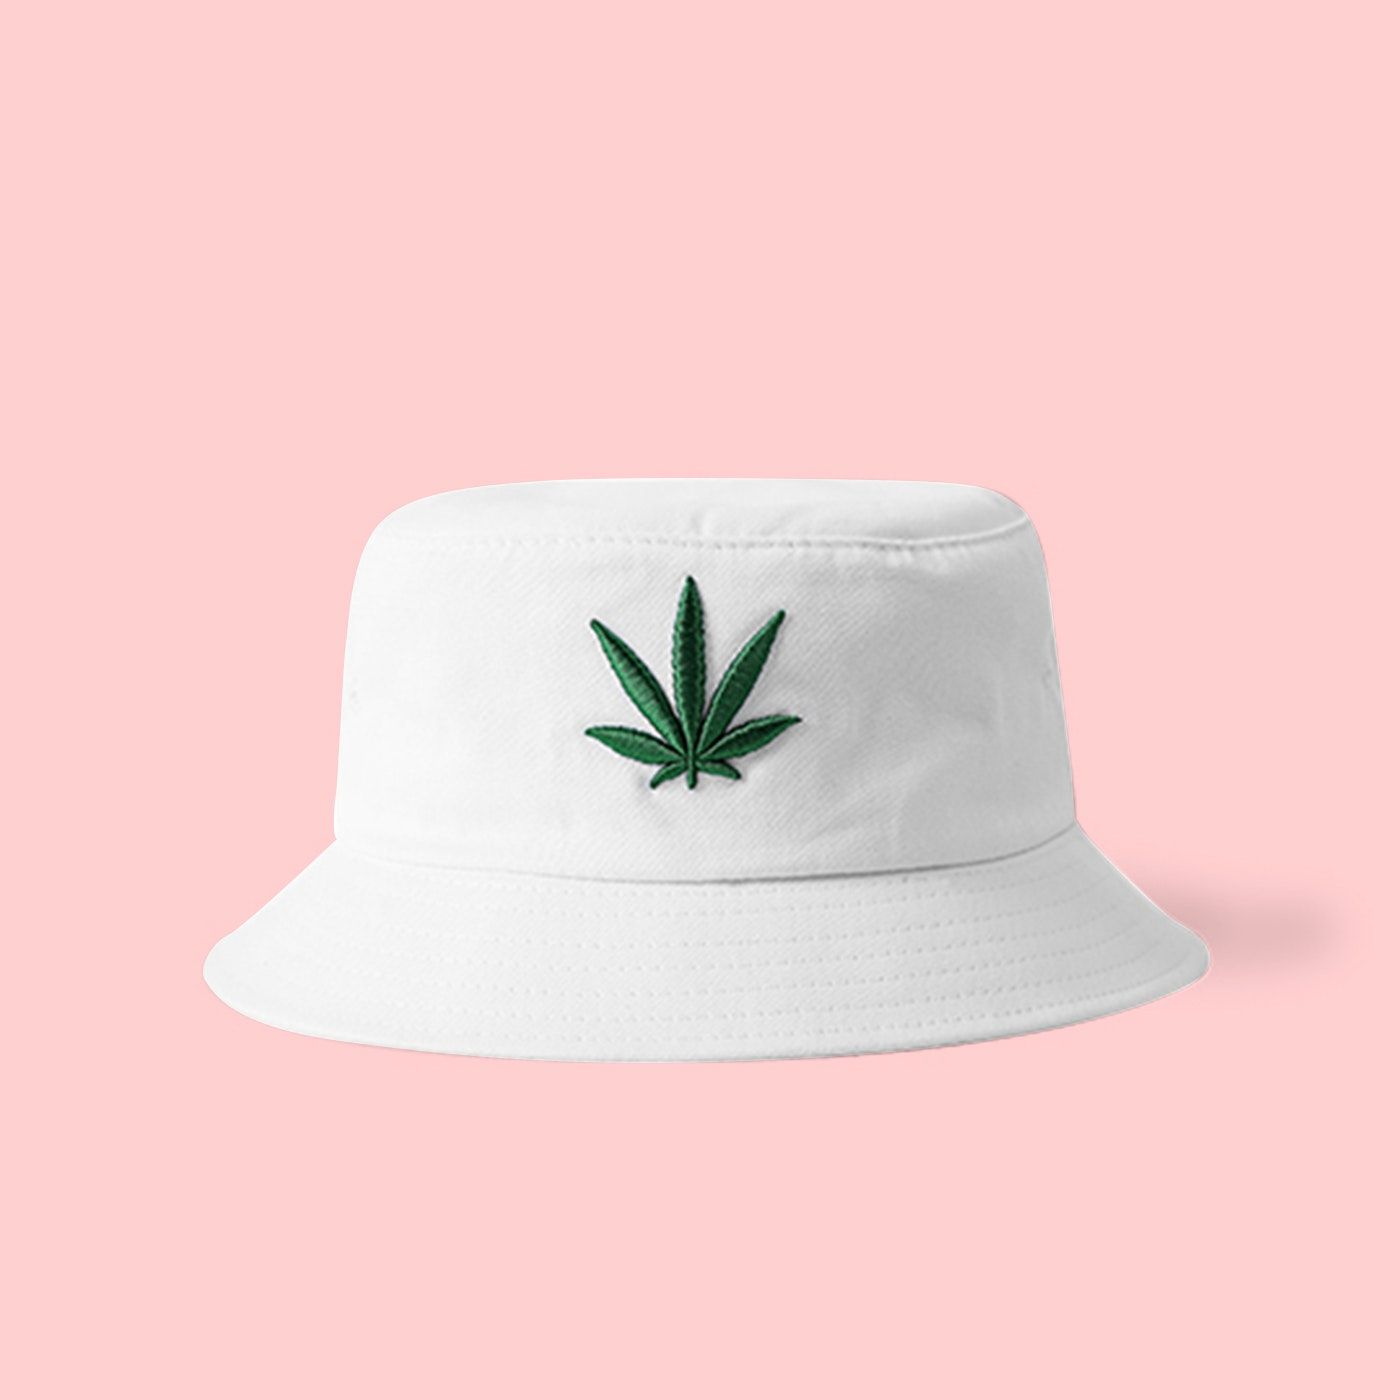 UNISEX 420 WEED BUCKET HAT IN WHITE by NOT OK CORP UNISEX 420 WEED BUCKET  HAT IN WHITESIZE  56-58CMFREE SHIPPING WORLDWIDE 0015af92ba5b